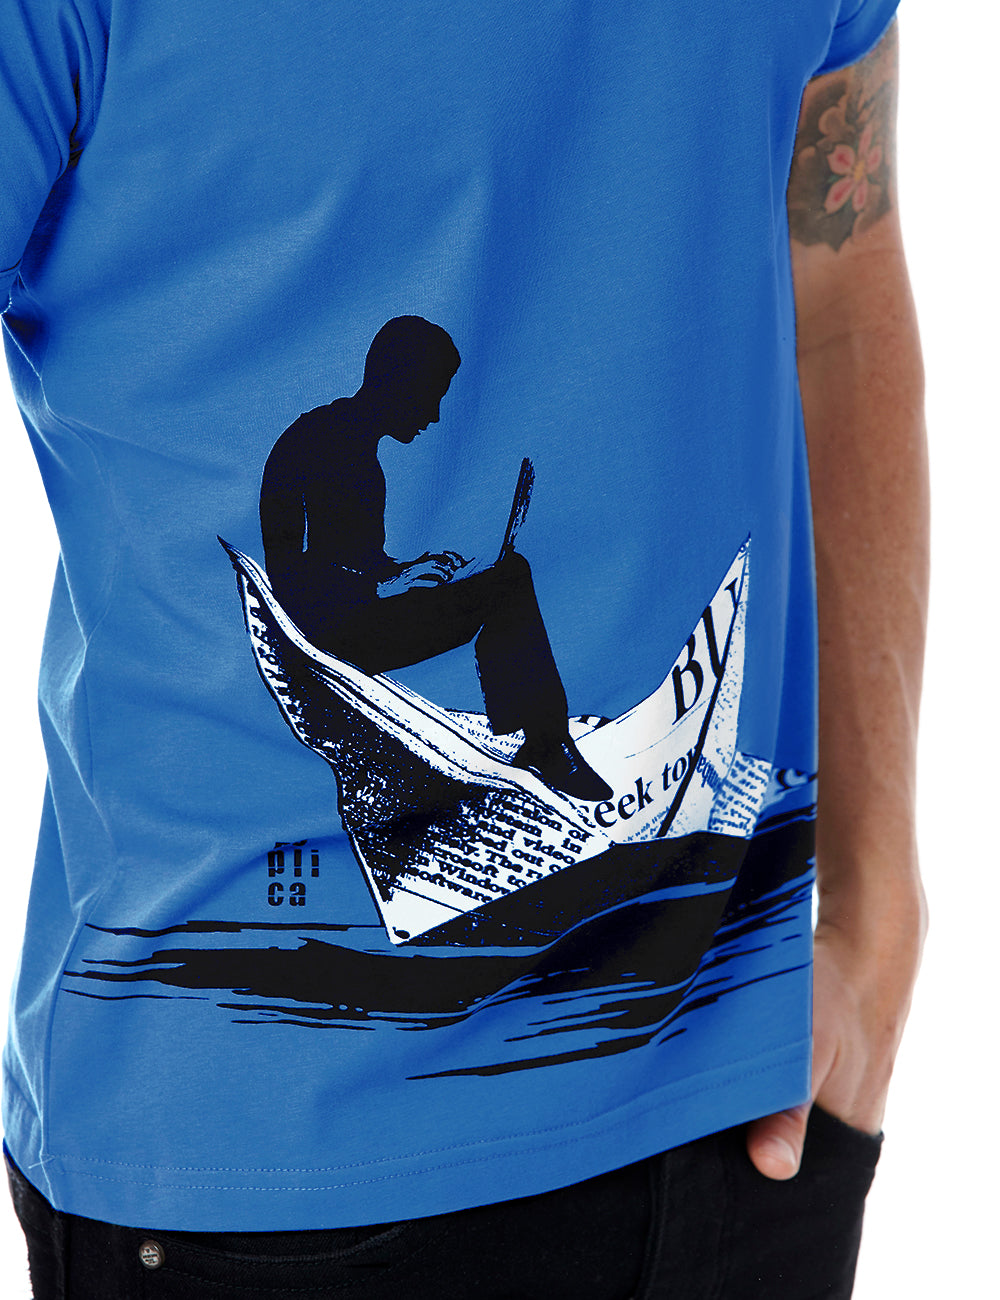 Boat tshirt Replica Greece Blue